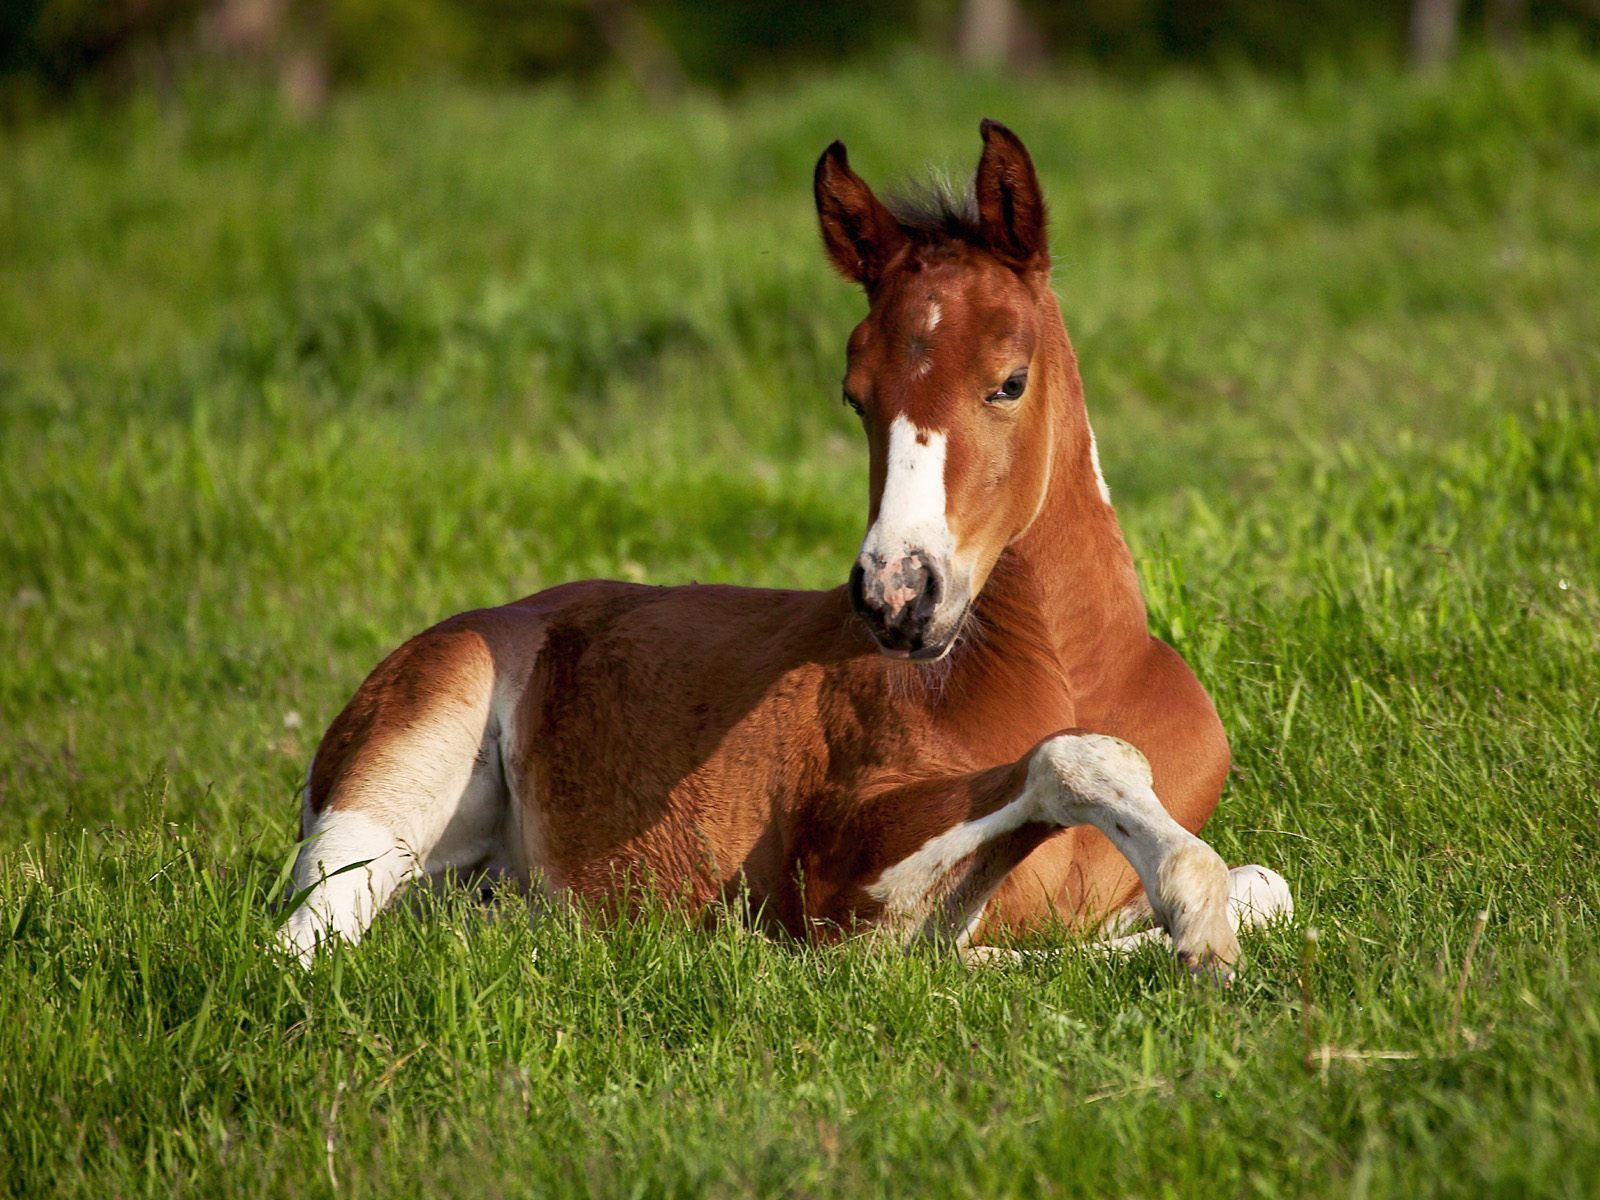 Baby Animals horse foal